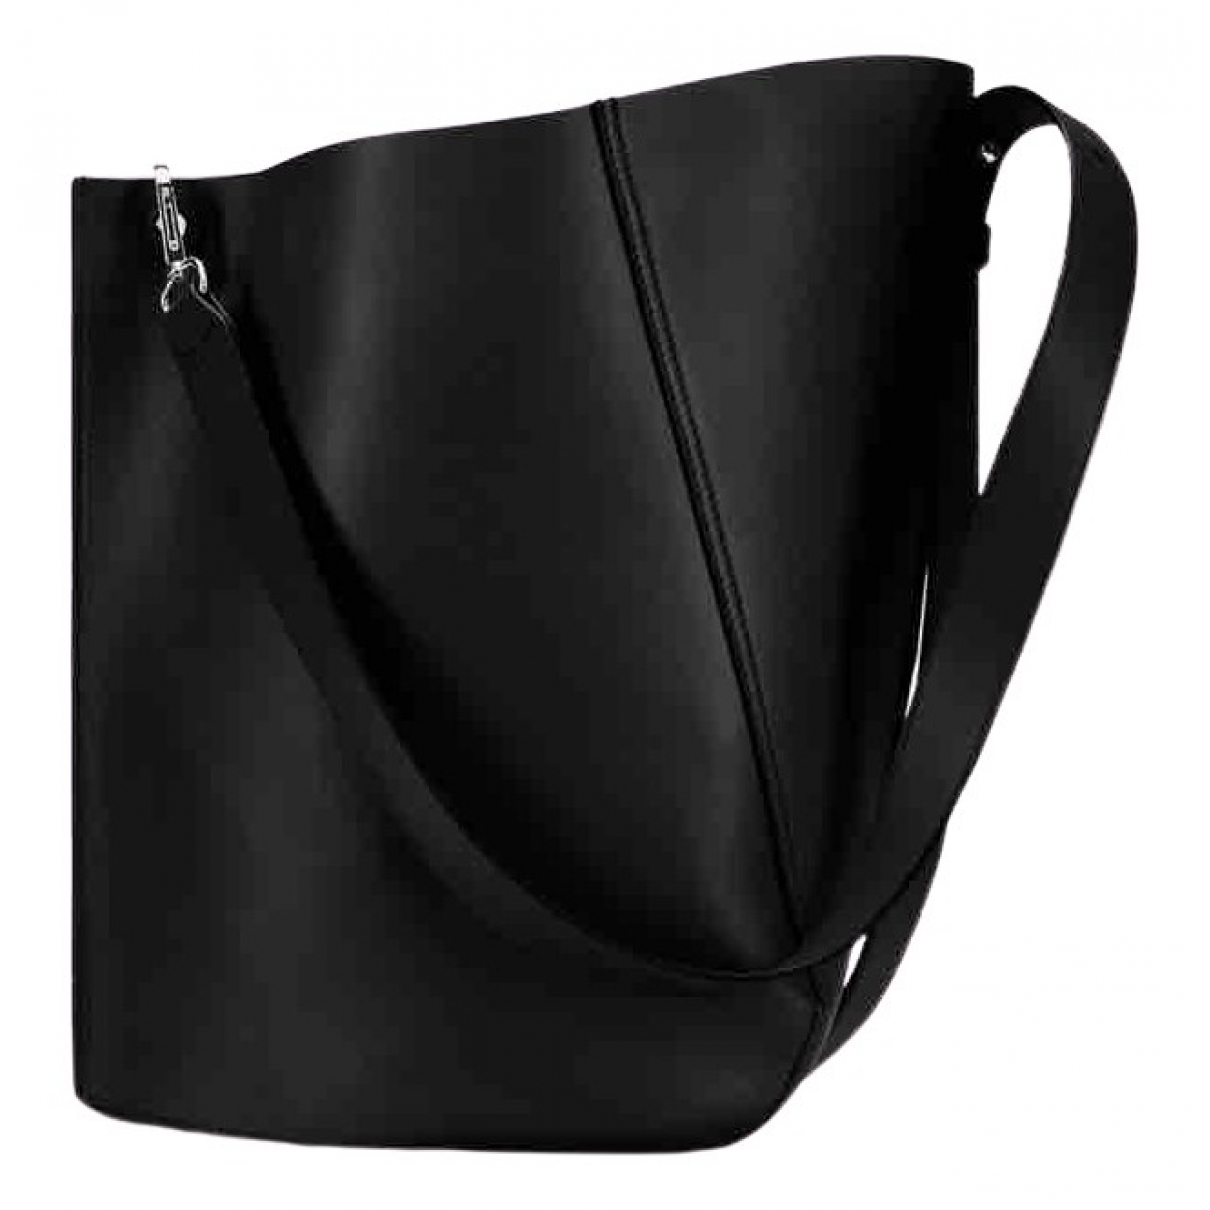 Lanvin \N Black Leather handbag for Women \N